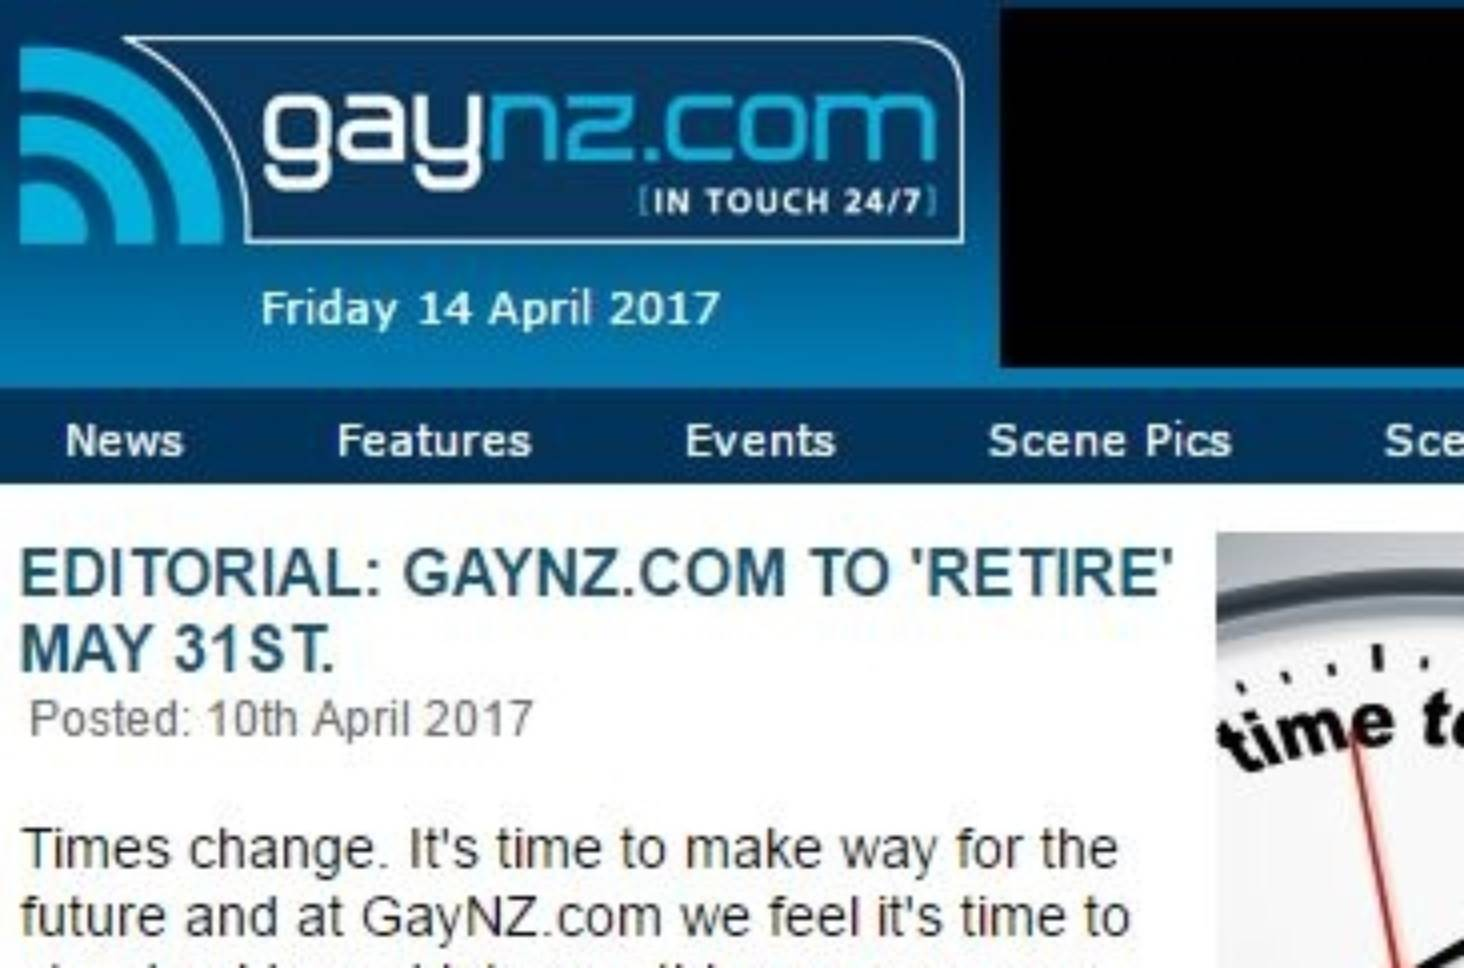 Gaynz dating services